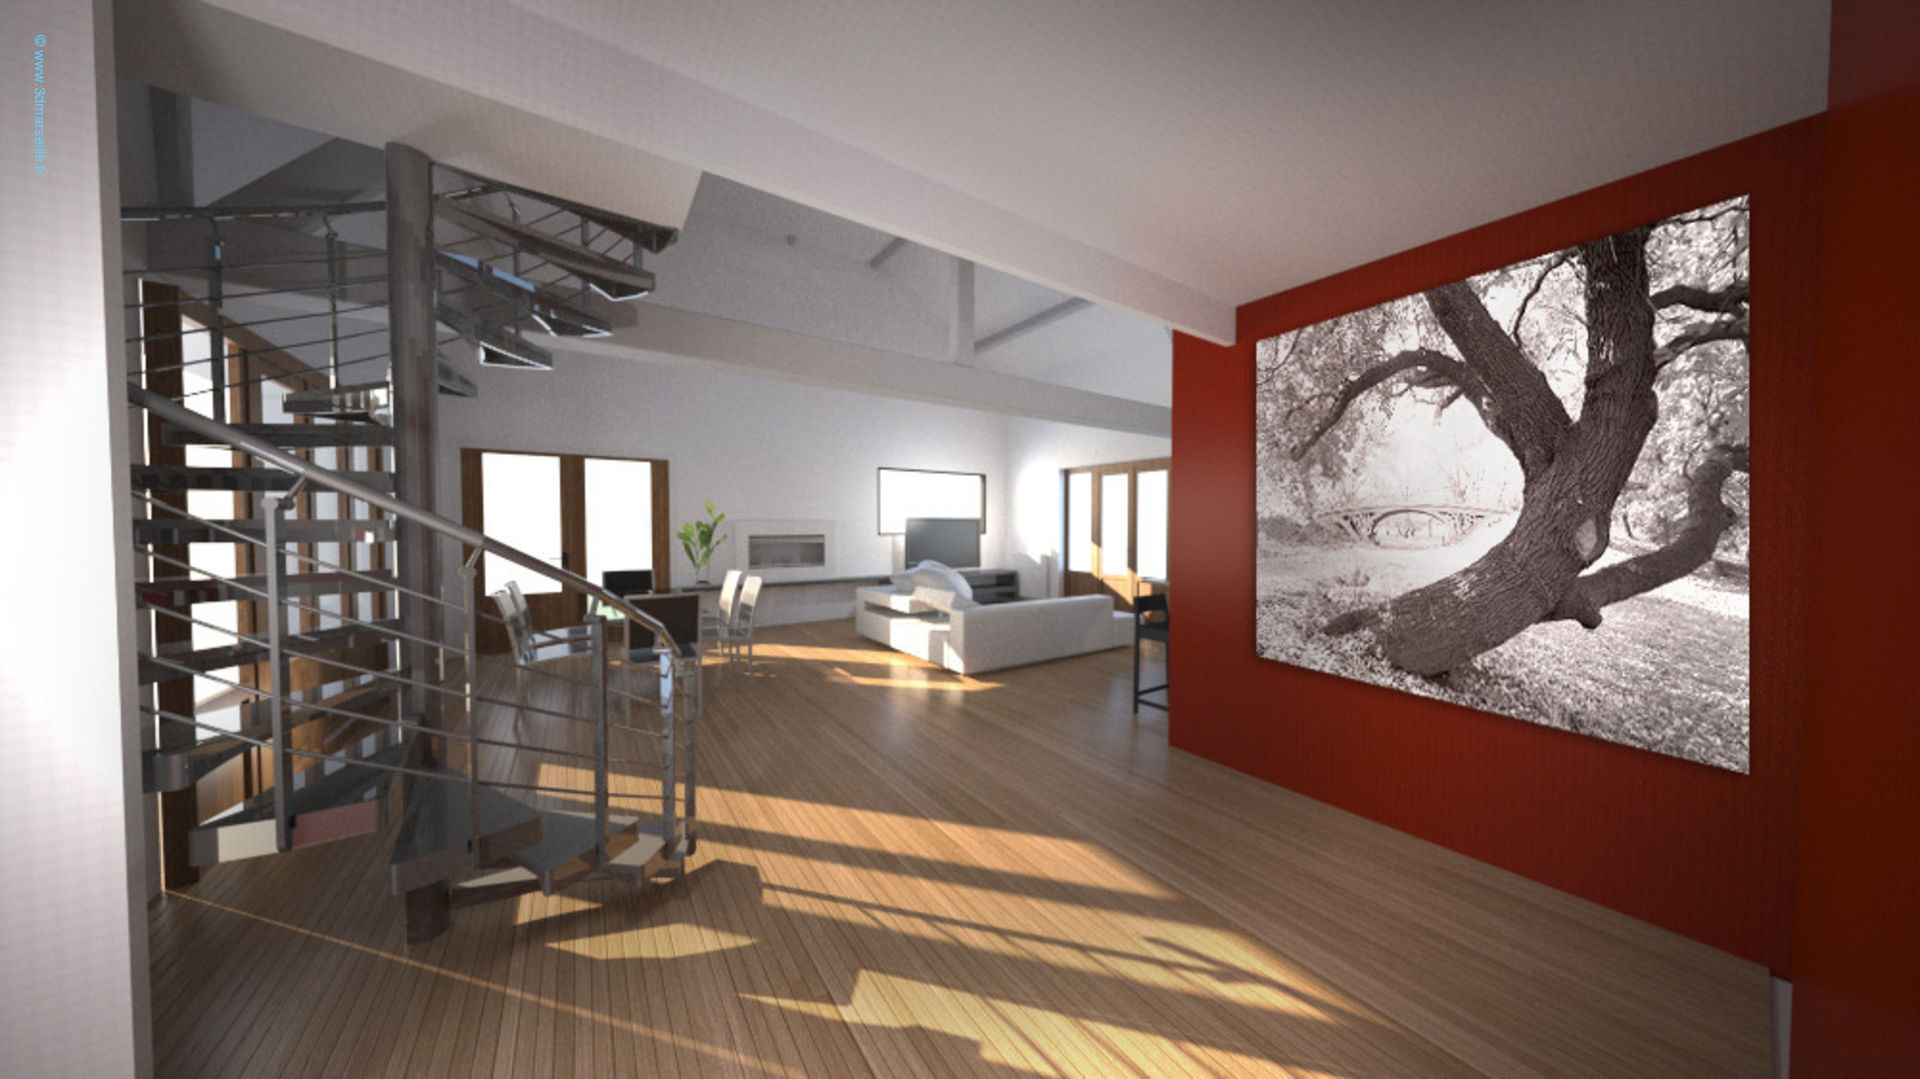 Projet d am nagement int rieur maison individuelle 3d for Decoration amenagement interieur